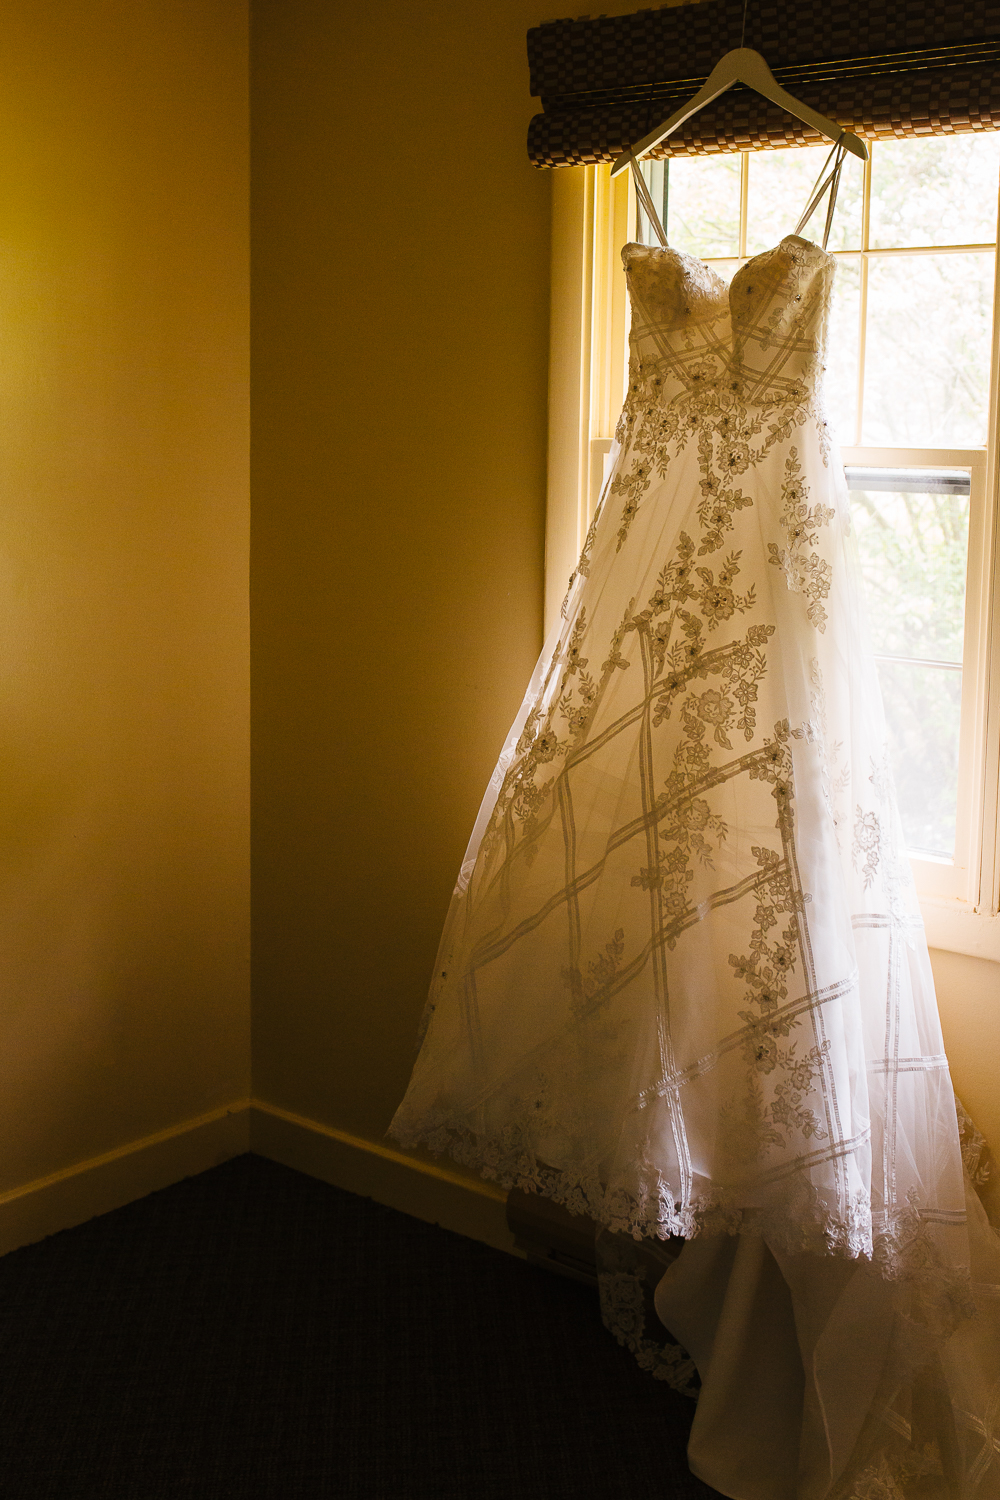 Full length wedding dress hangs in an empty room. The dress is white and lacey.